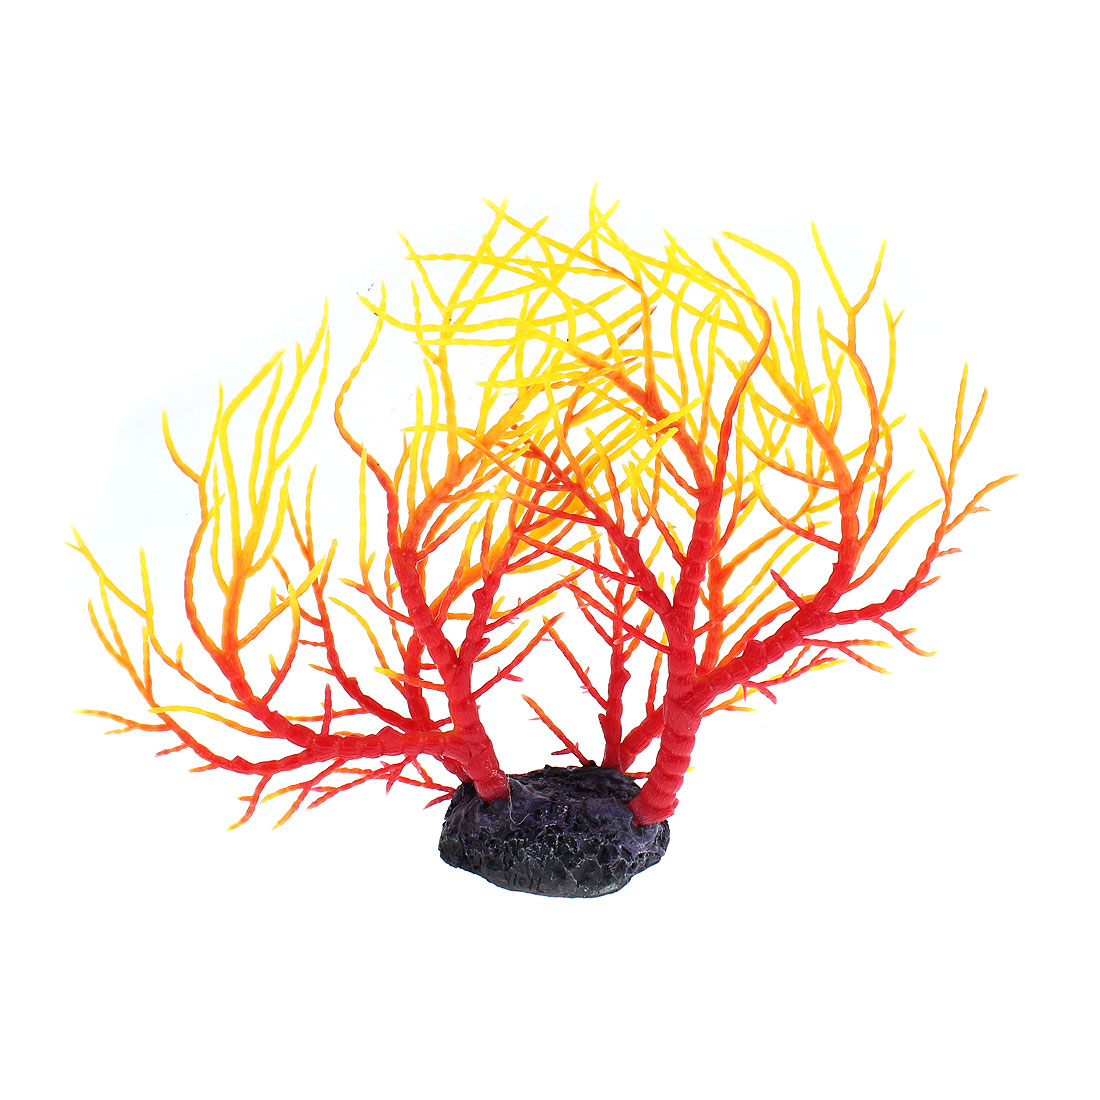 Aquarium Tank Artificial Coral Underwater Plant Tree Decor Red Yellow